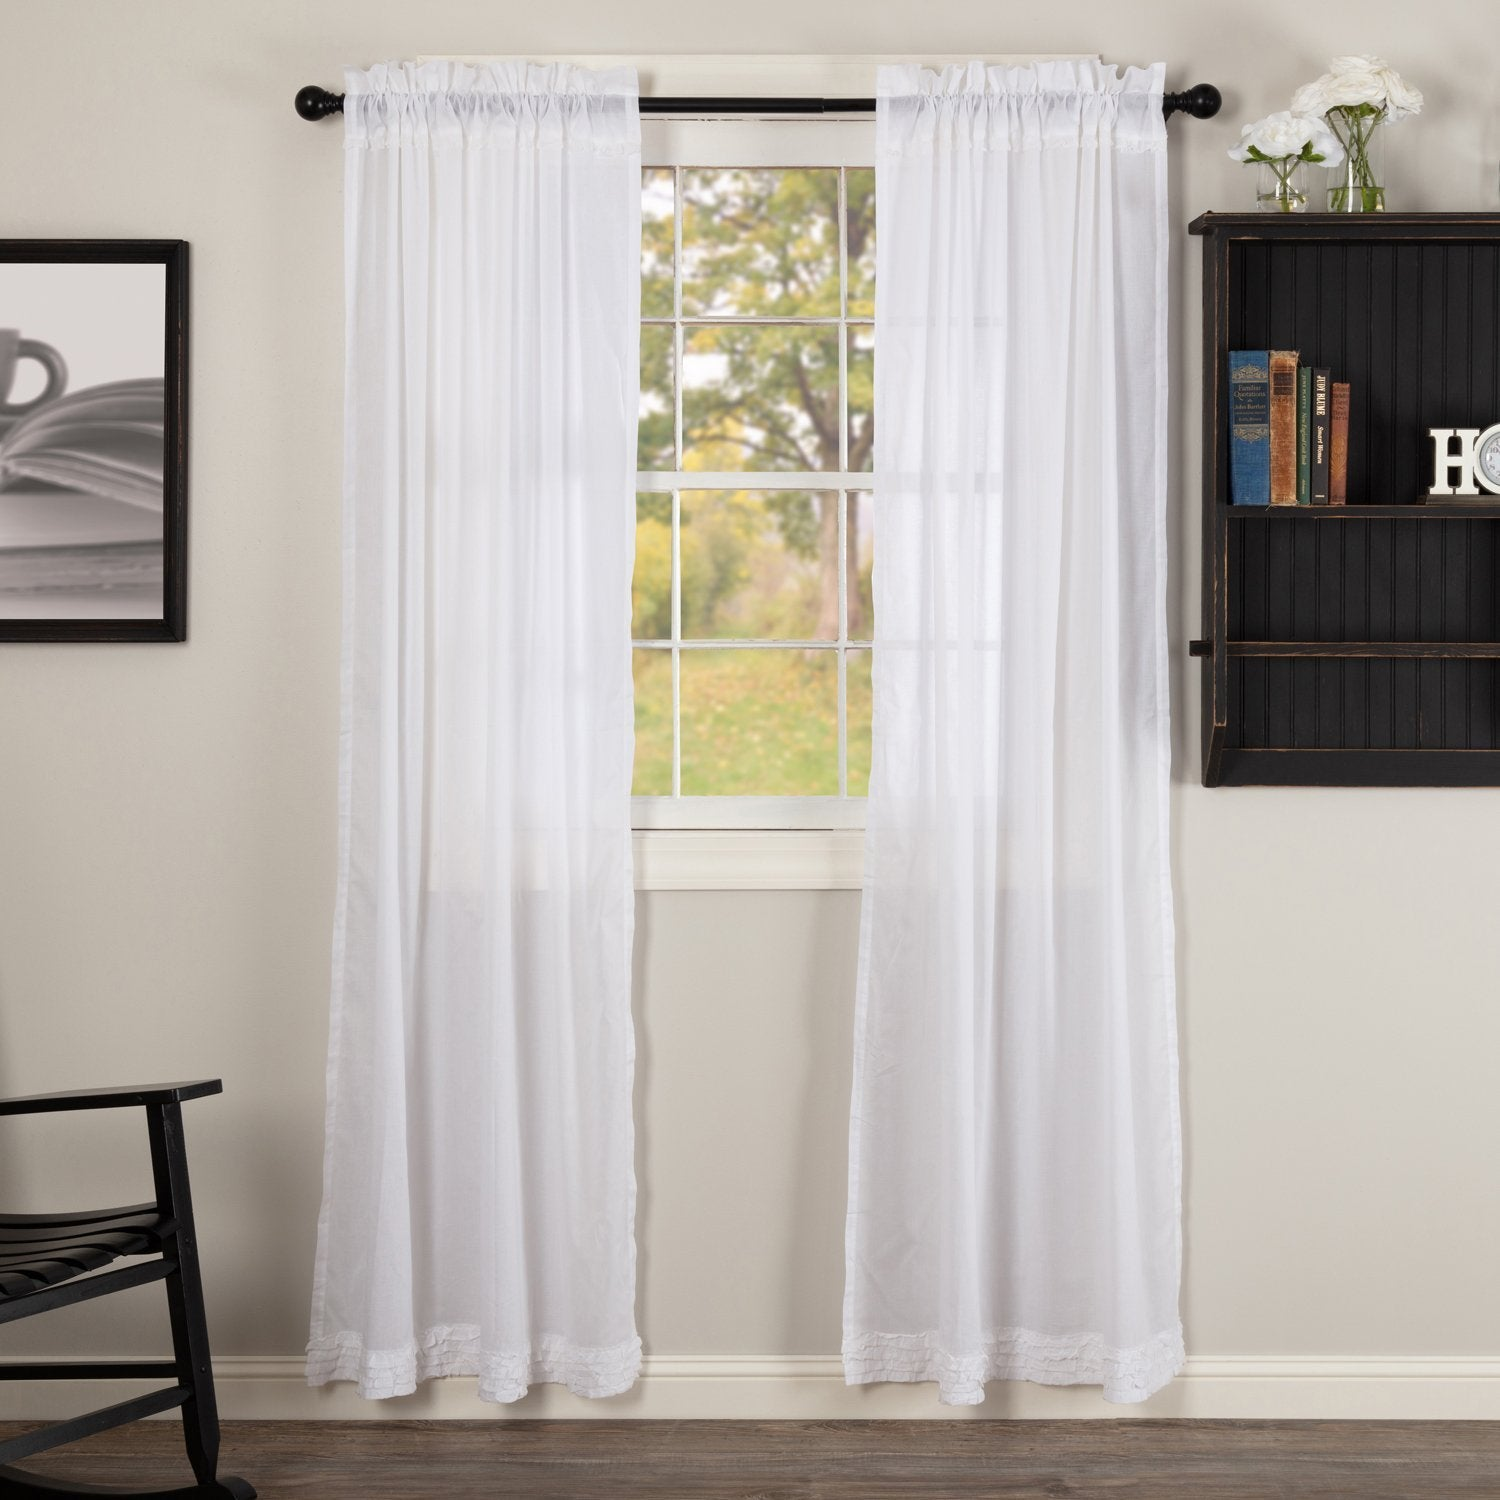 White Ruffled Sheer Panel Curtain Set of 2